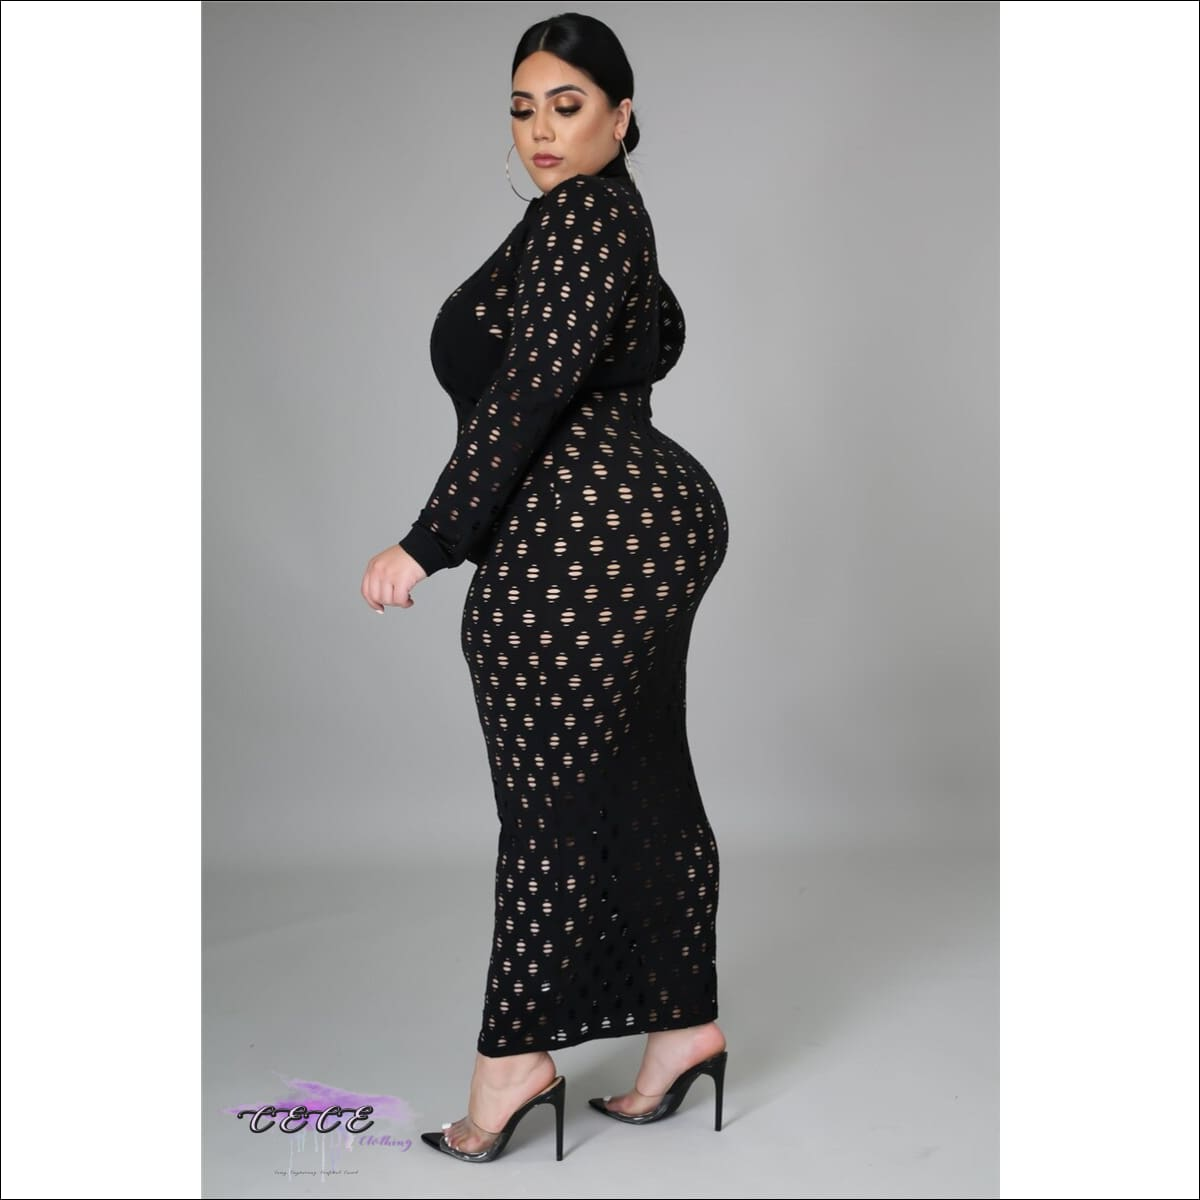 'Let These Curves Breathe' Fishnet Maxi Dress